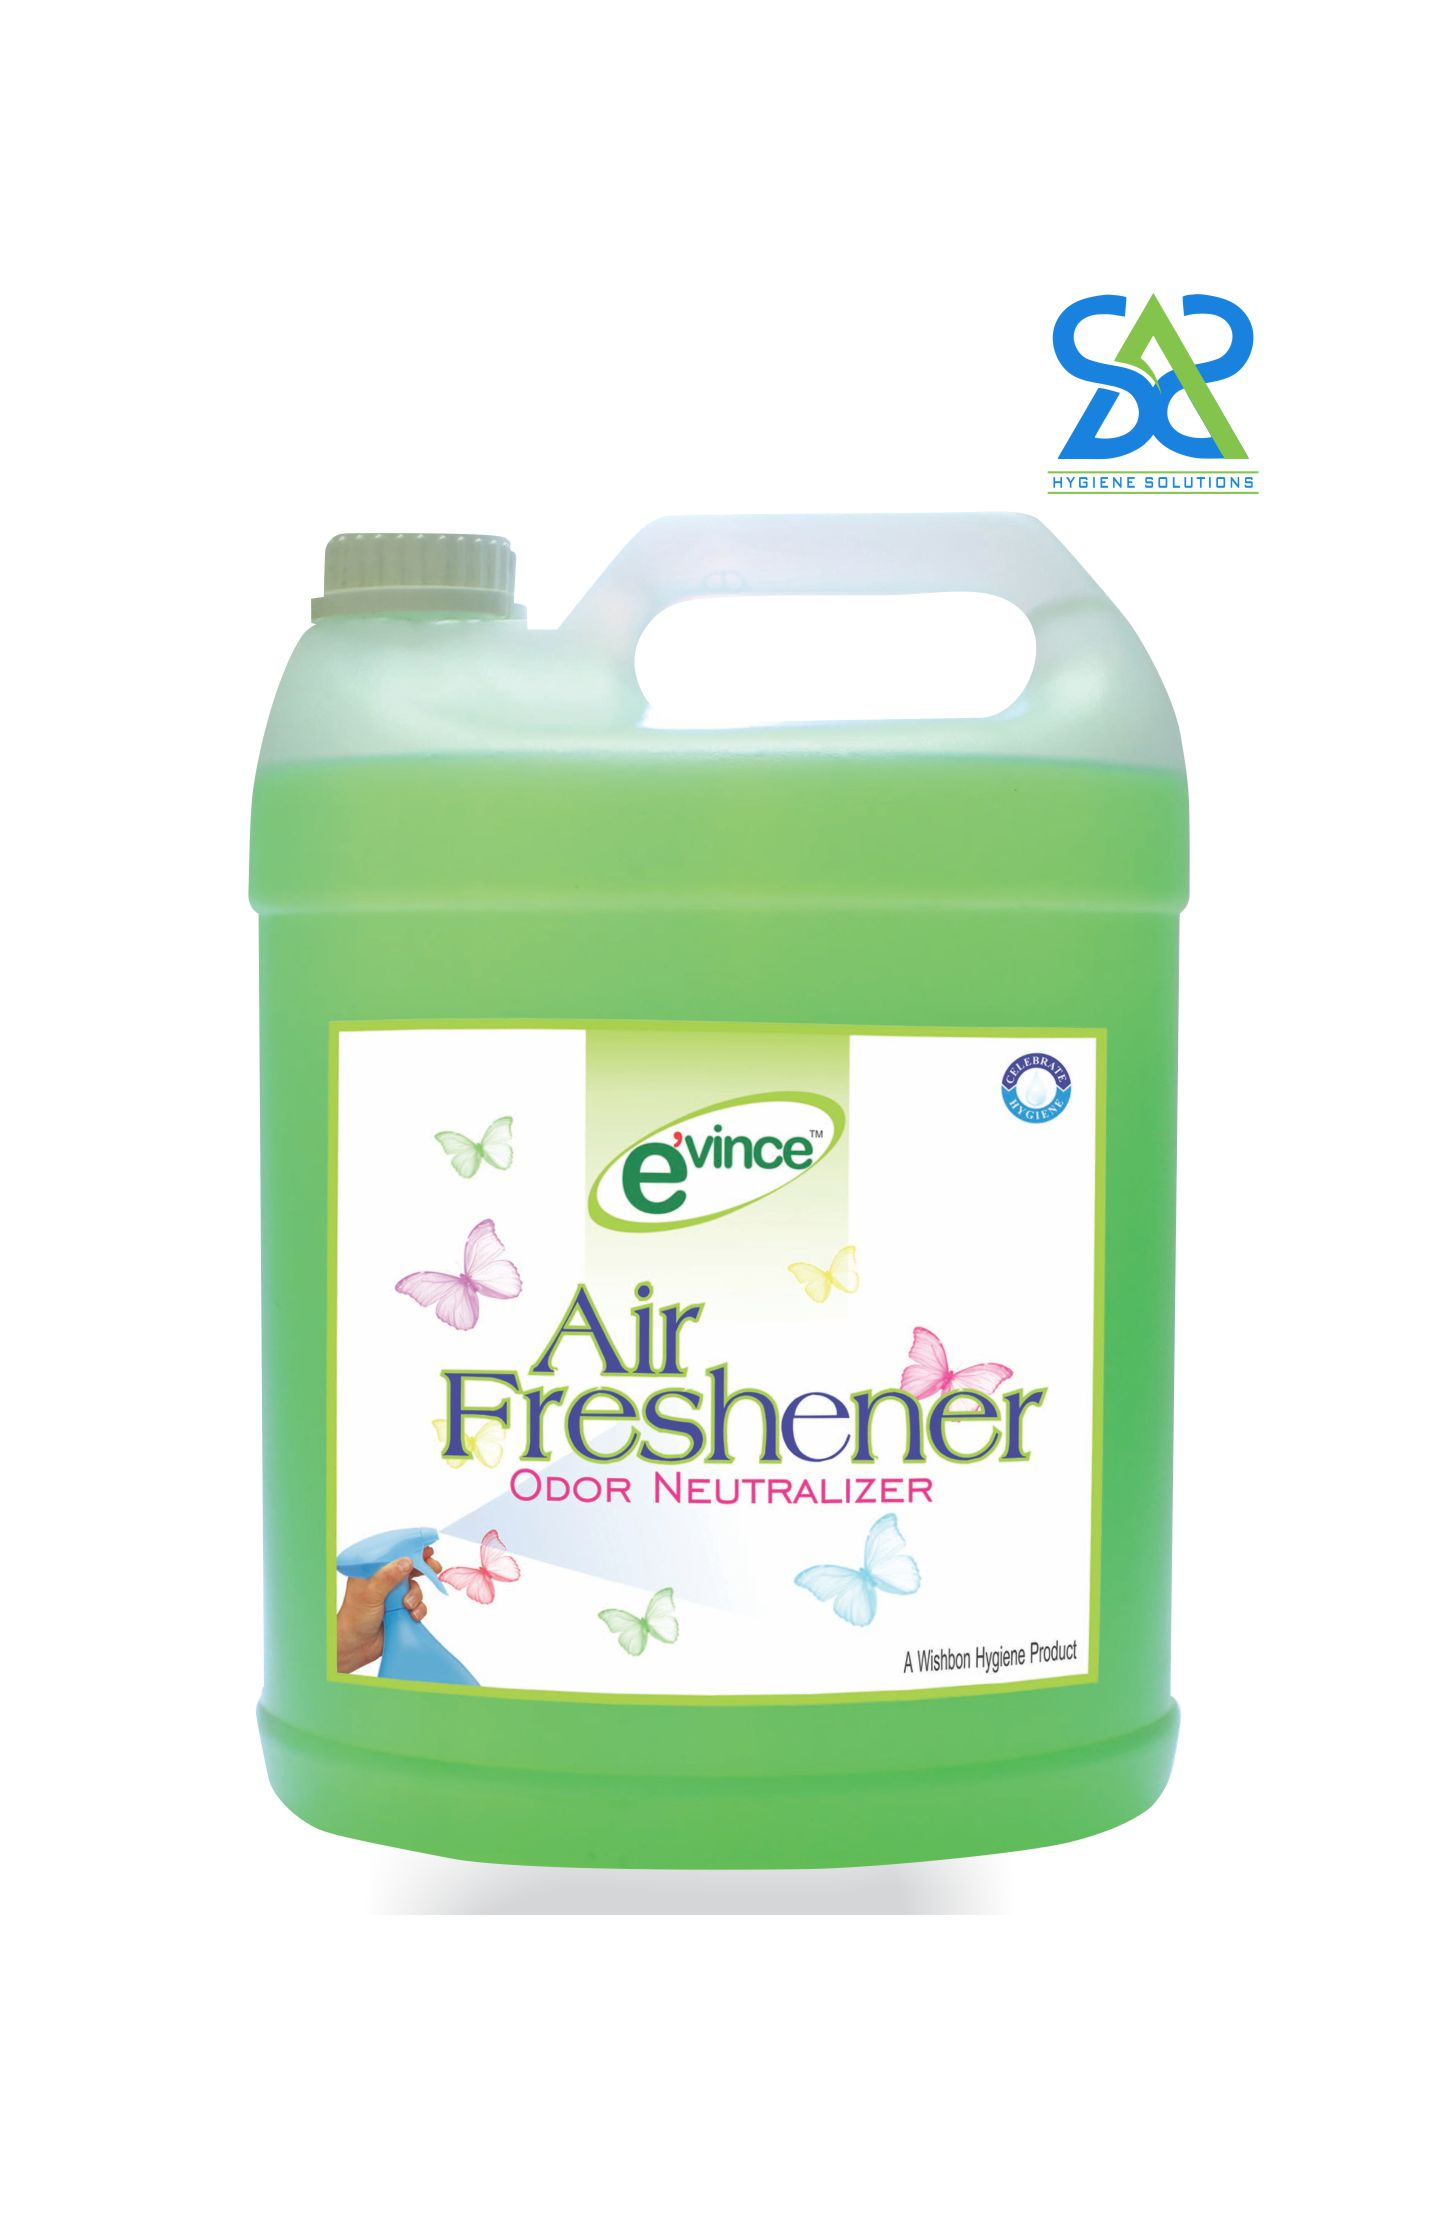 Evince Air Freshener - Grape Green, 5 Litres